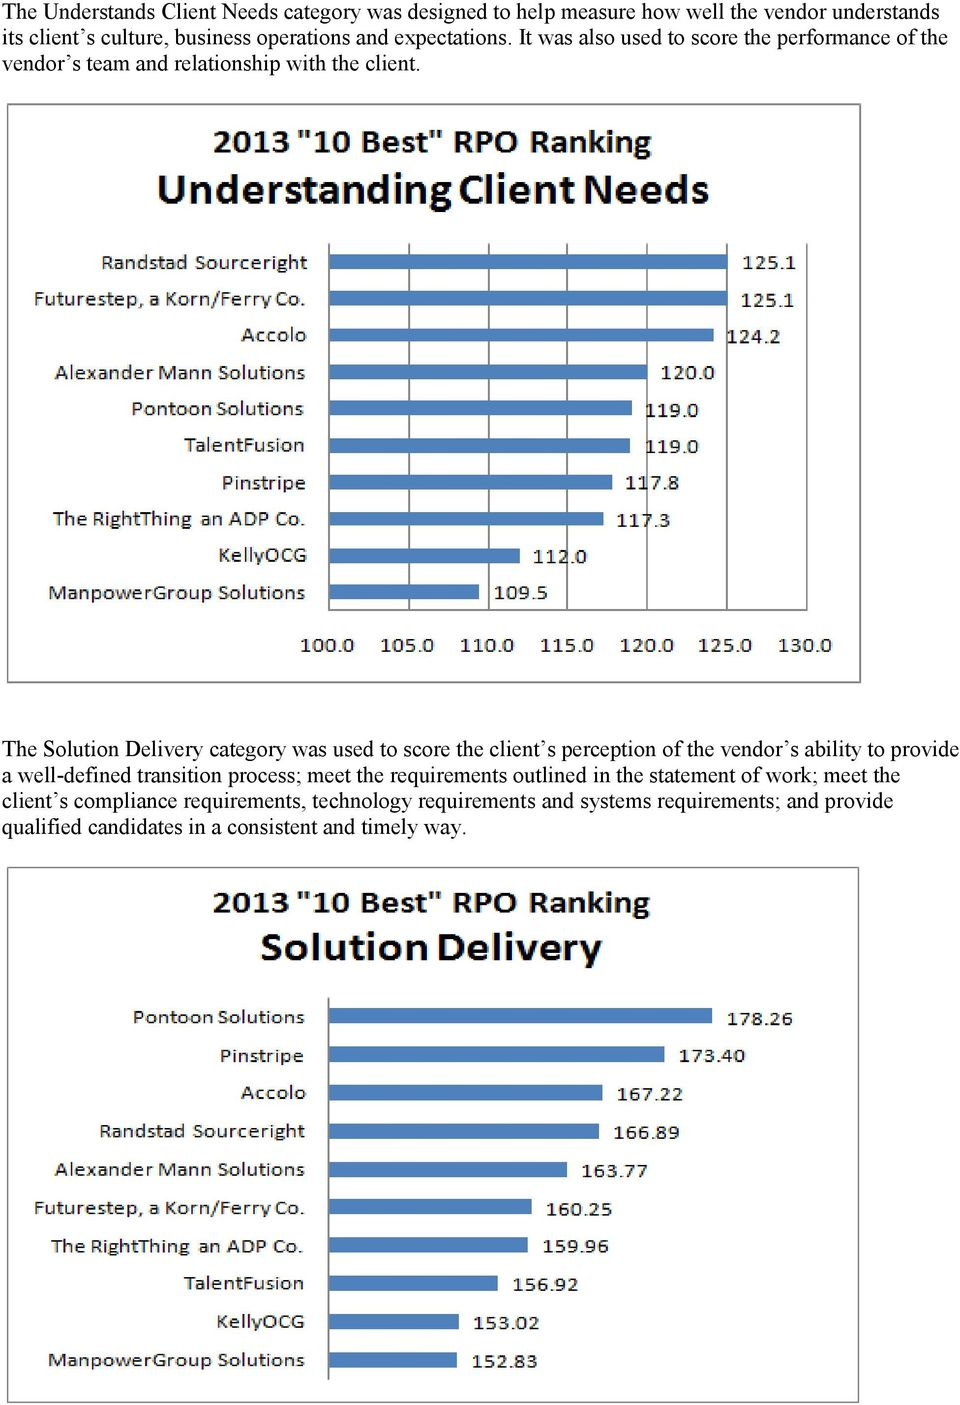 The Solution Delivery category was used to score the client s perception of the vendor s ability to provide a well-defined transition process; meet the